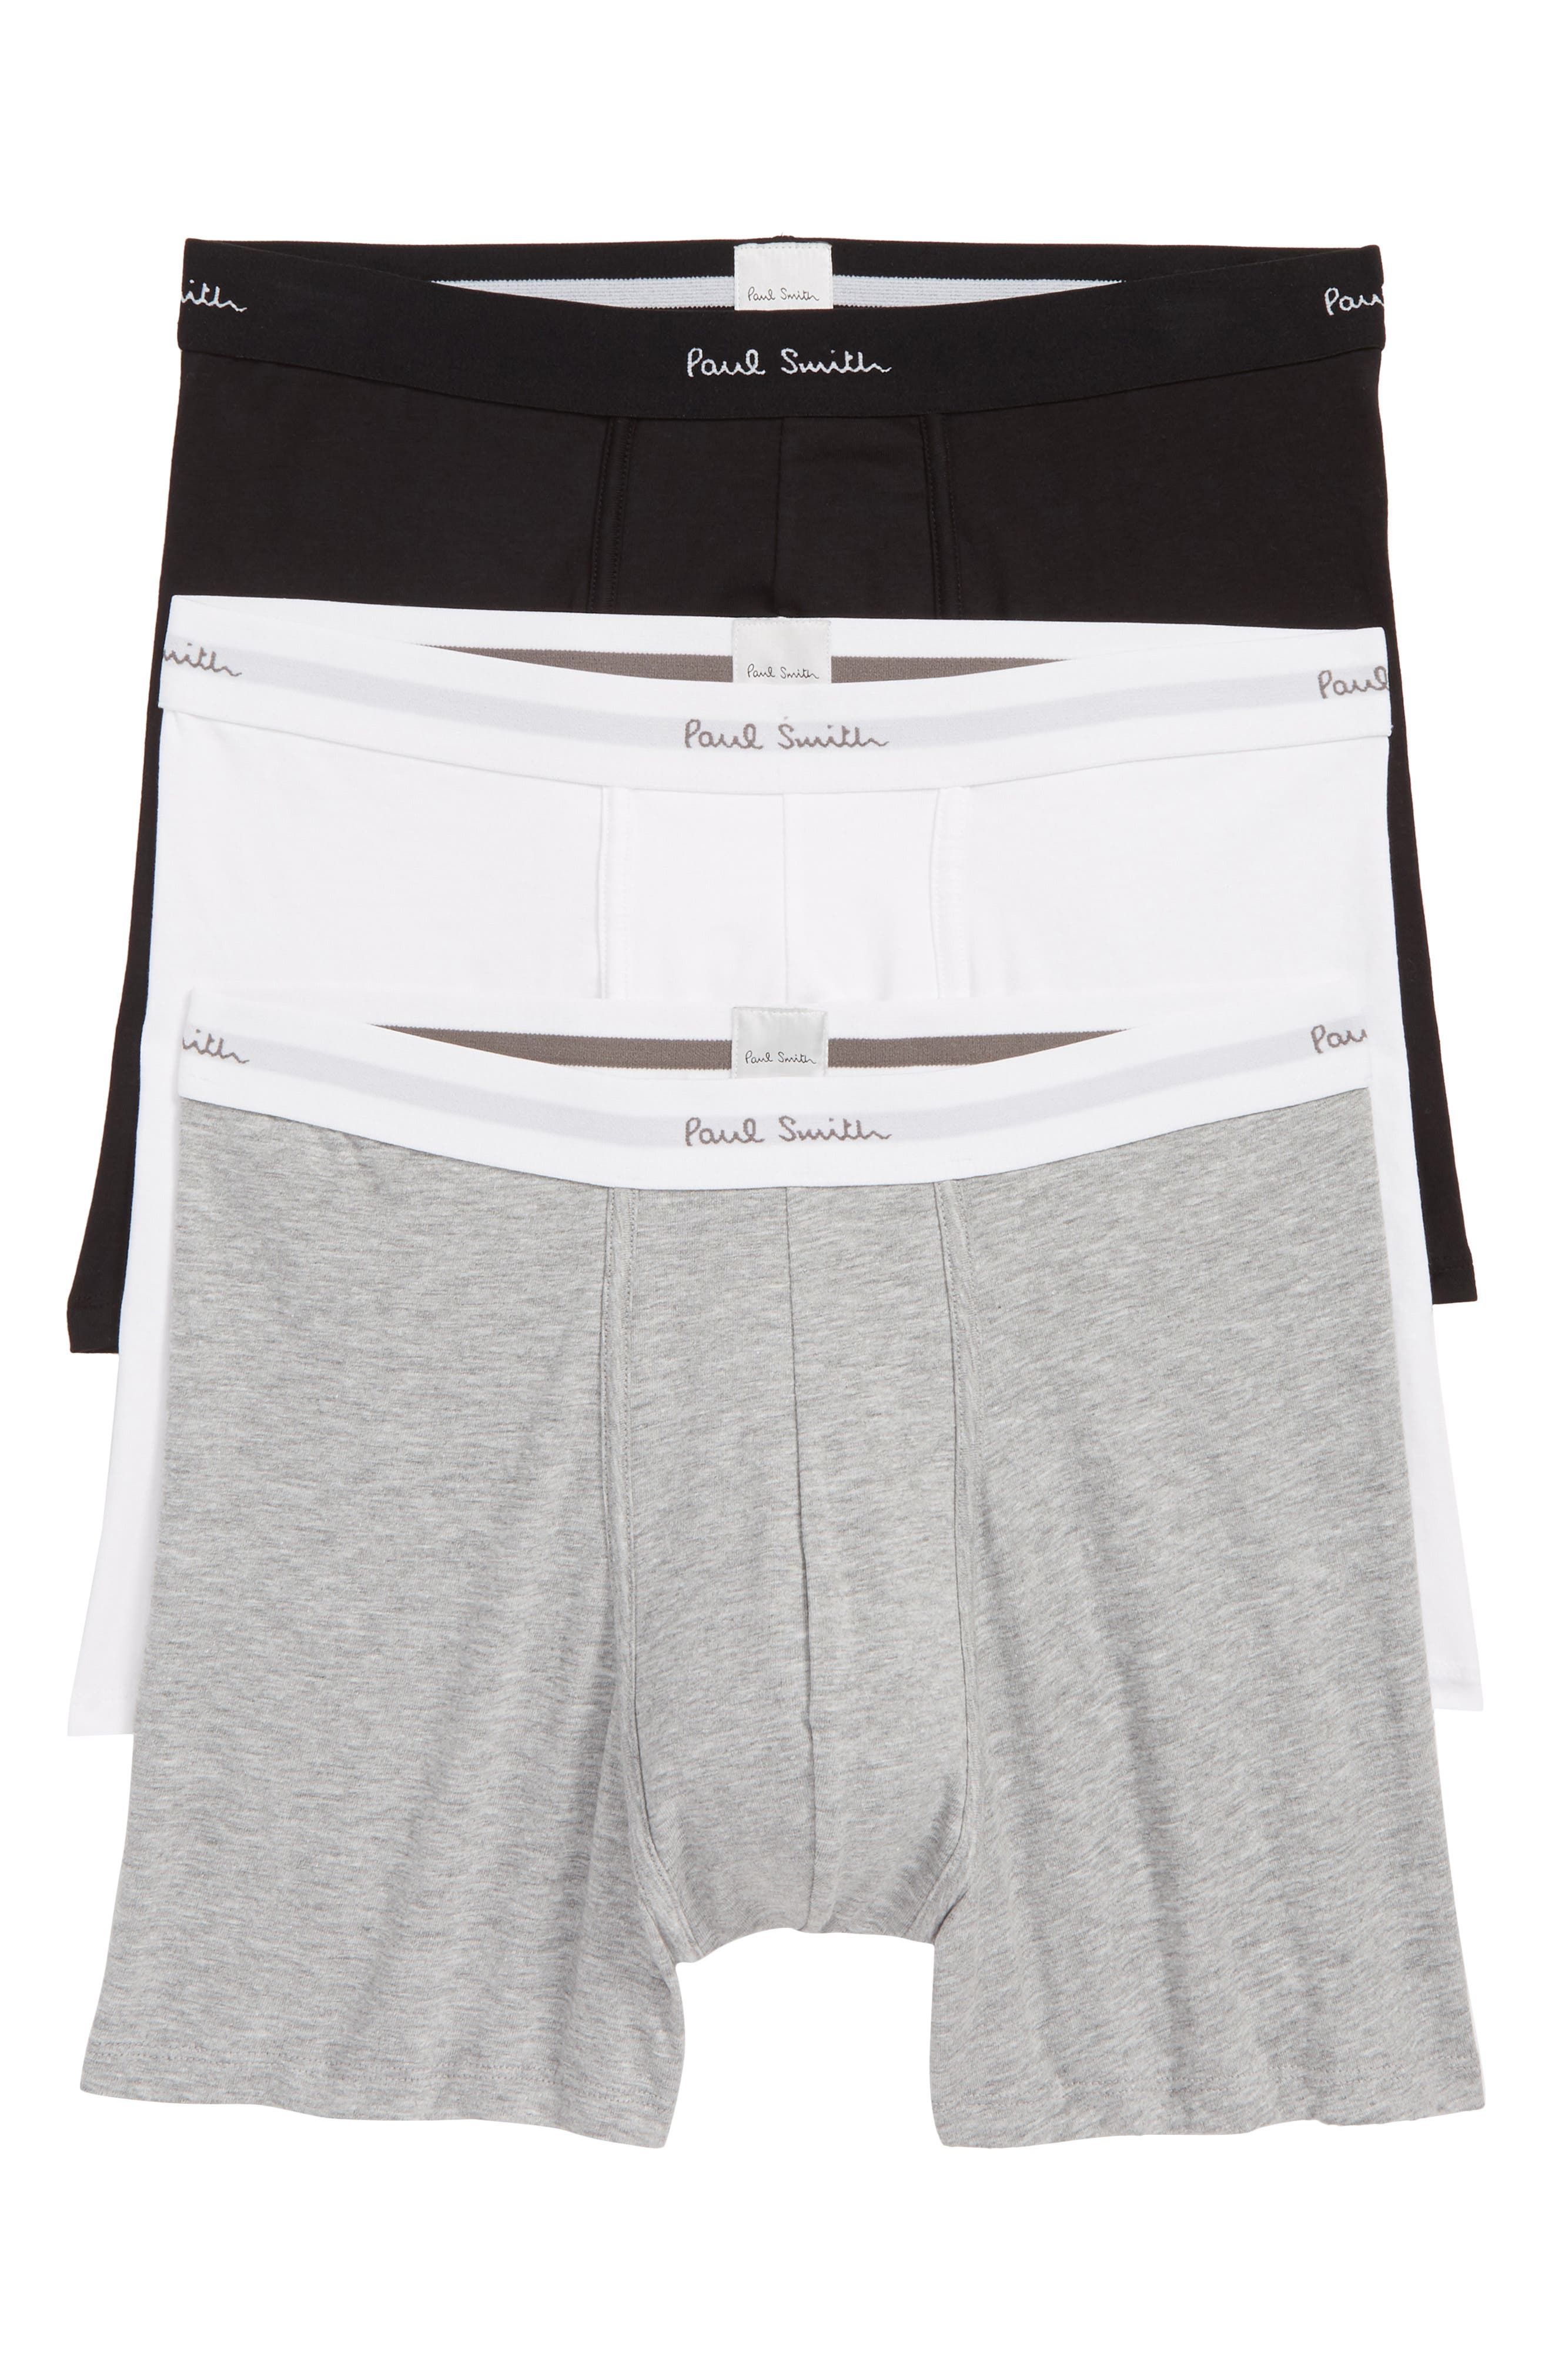 PAUL SMITH 3-Pack Trunks, Main, color, BLACK/ WHITE/ GREY